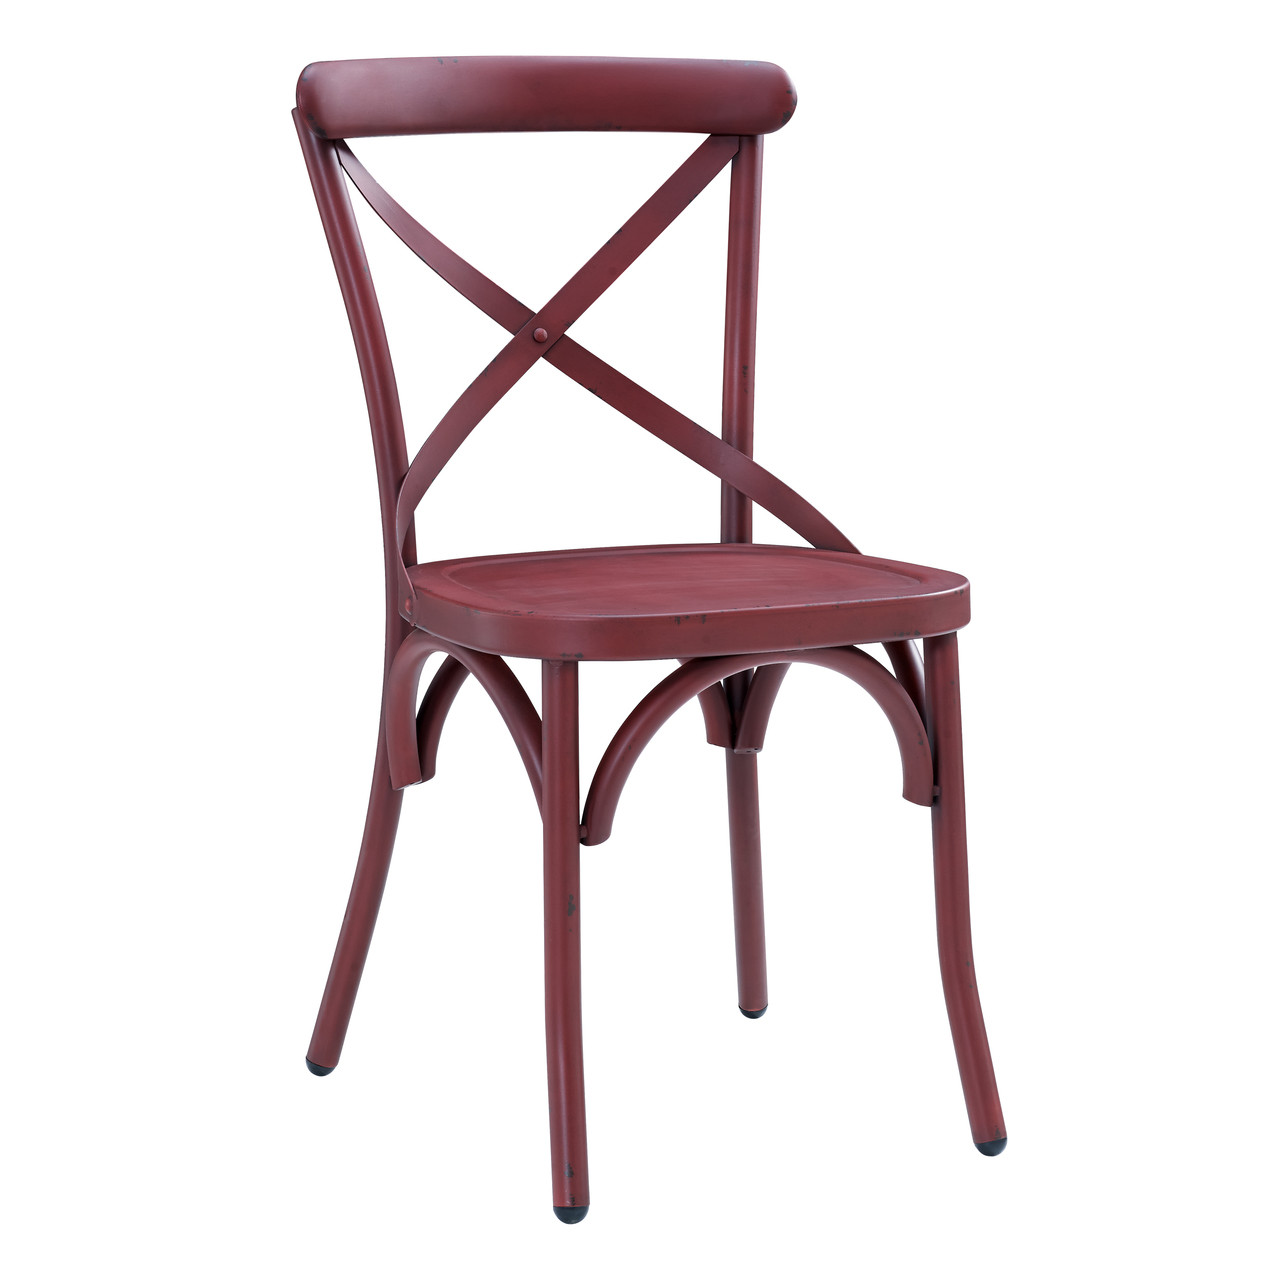 Attirant Bowery Dining Chair   Red